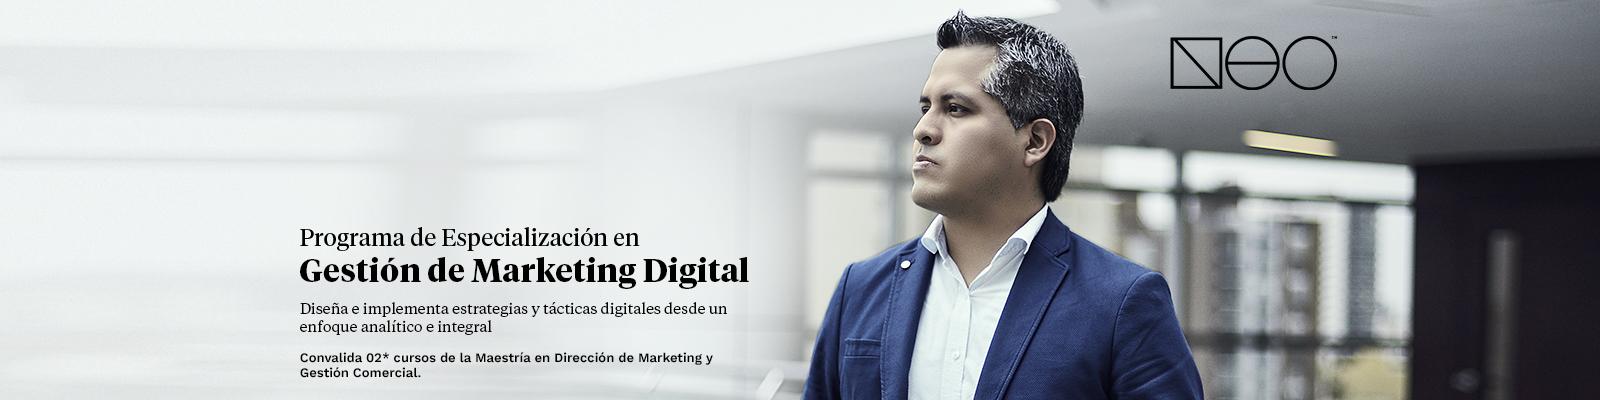 Universidad del Pacífico - Programa de Especialización en Estrategias de Marketing Digital